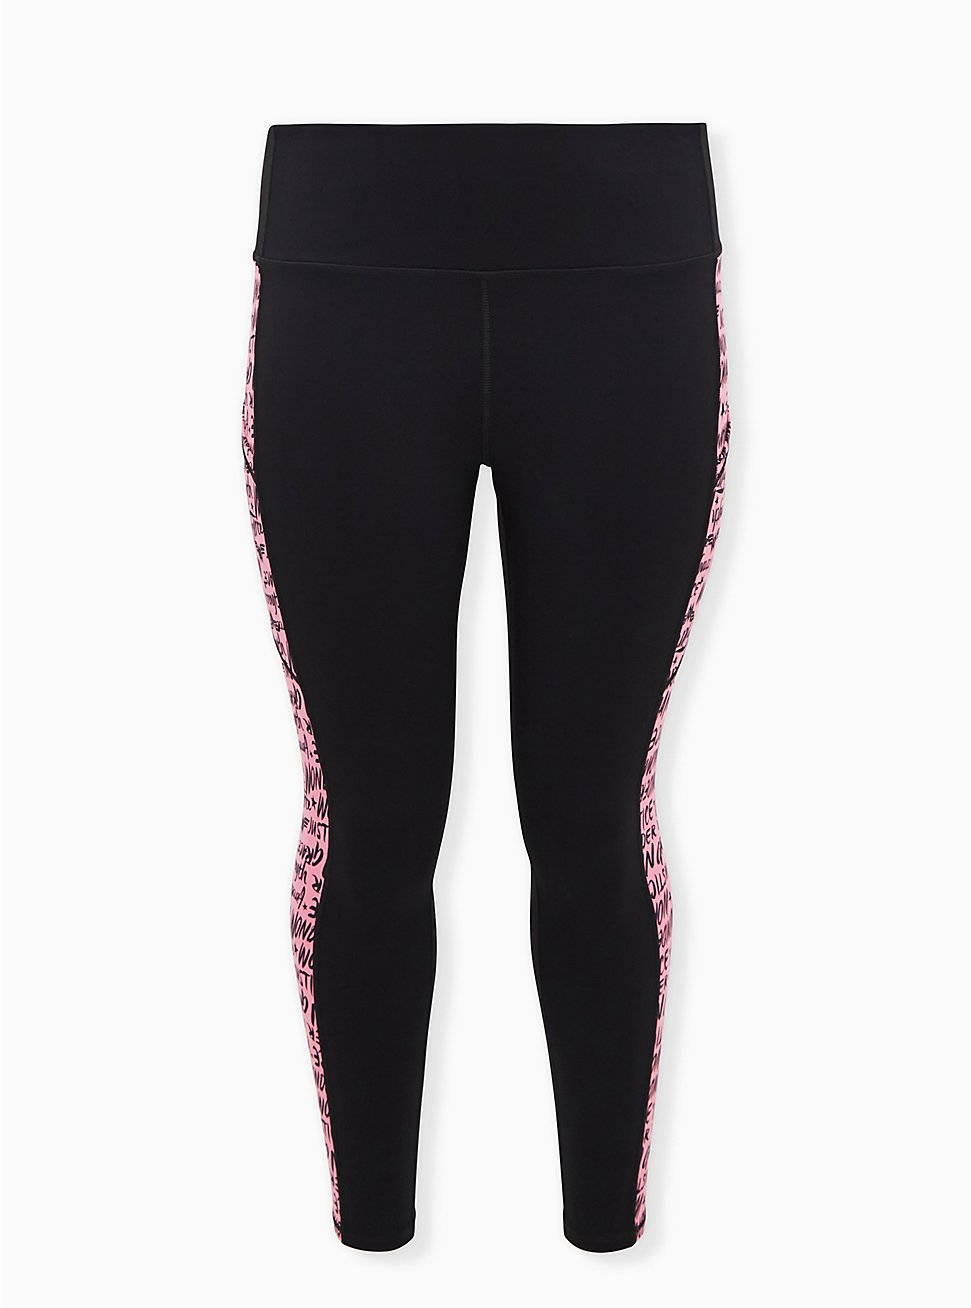 Breast Cancer Awareness - Wonder Woman Black & Pink Active Legging with Pockets, DEEP BLACK, hi-res